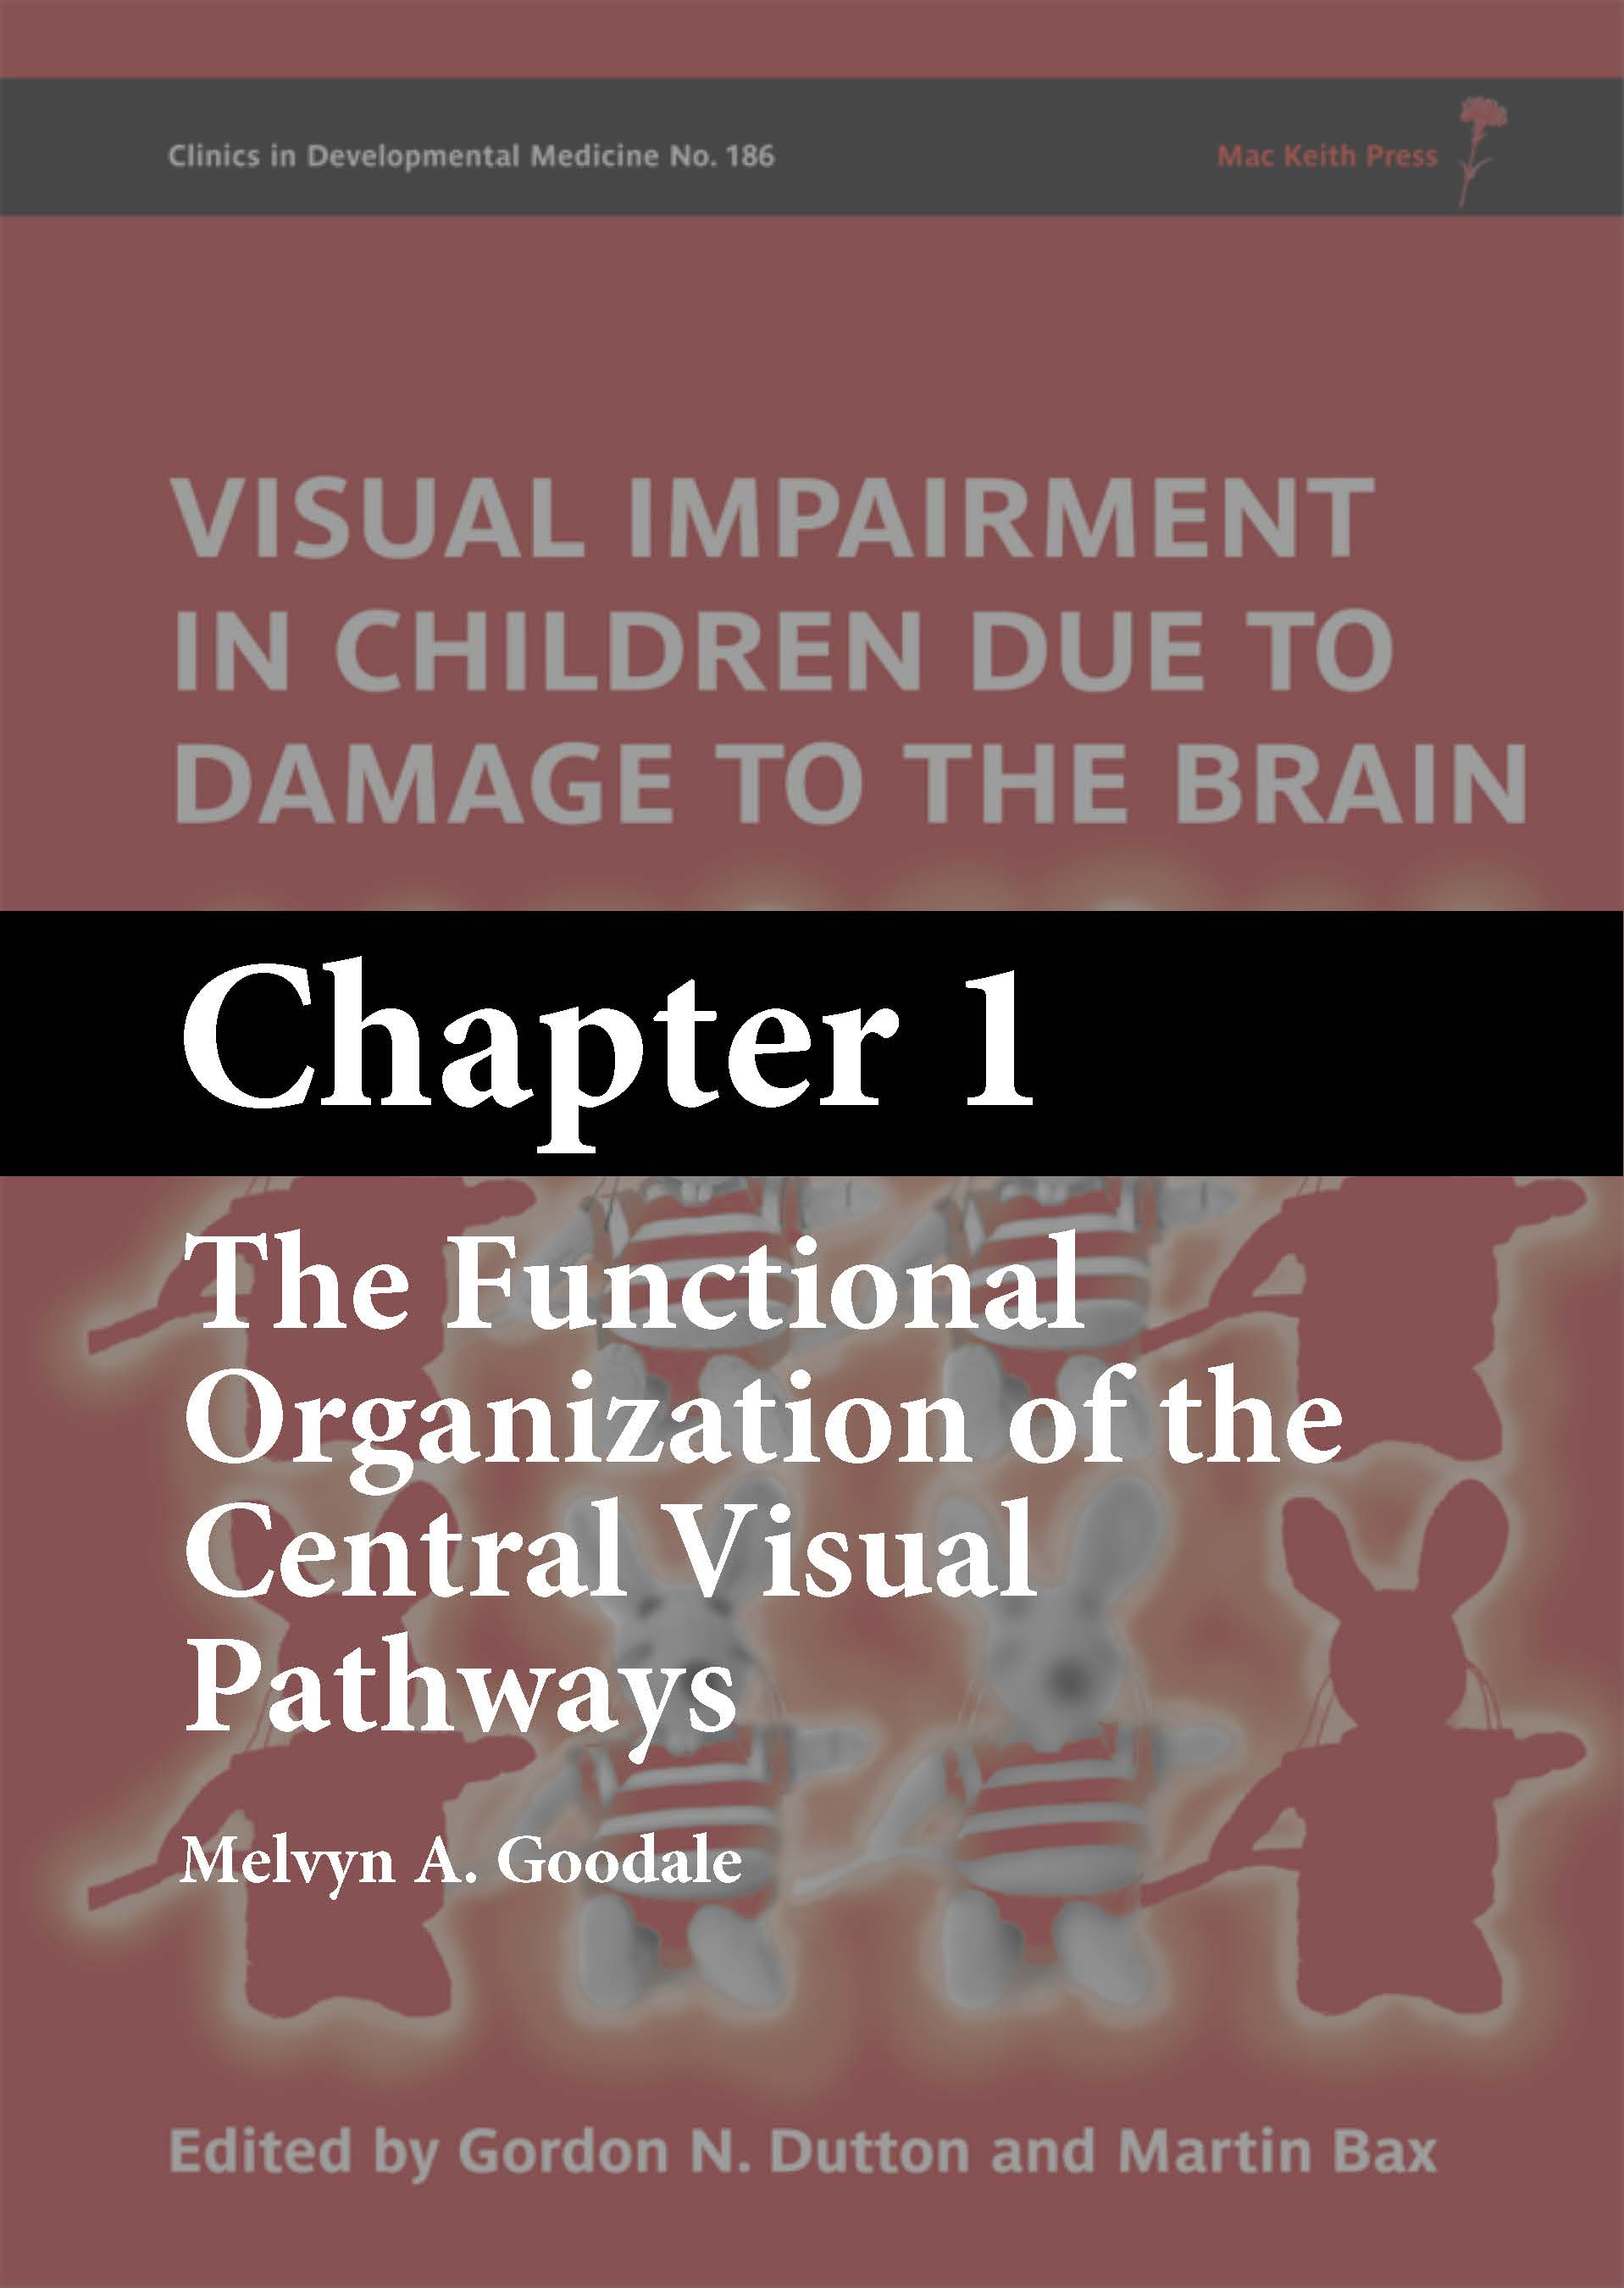 Visual Impairment in Children due to Damage to the Brain - Chapter 1: The Functional Organization of the Central Visual Pathways